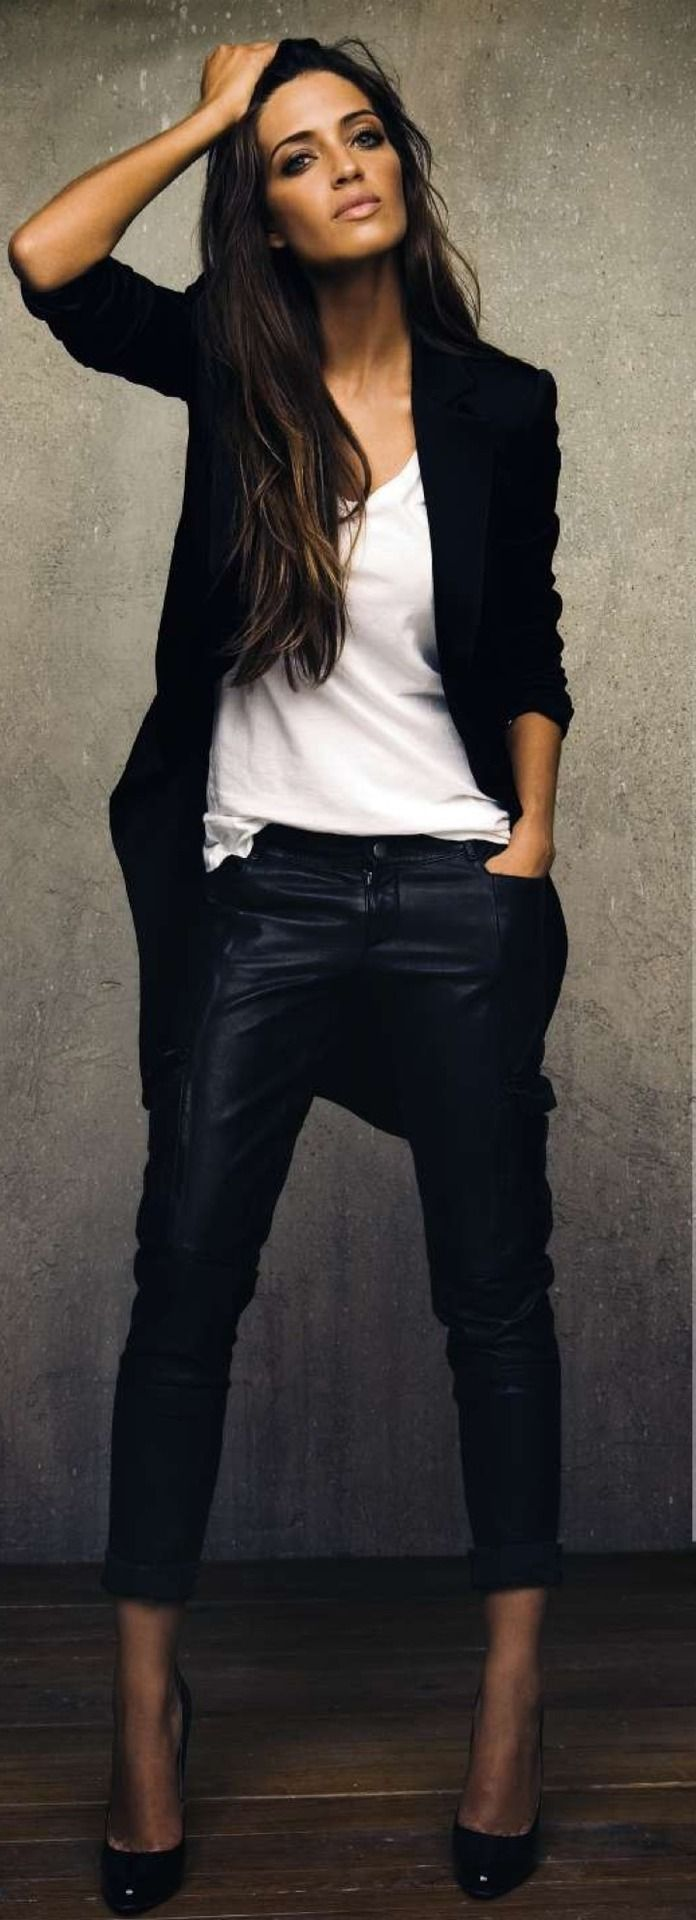 Shop this look on Lookastic:  http://lookastic.com/women/looks/black-coat-white-crew-neck-t-shirt-black-skinny-pants-black-pumps/4395  — Black Coat  — White Crew-neck T-shirt  — Black Leather Skinny Pants  — Black Leather Pumps